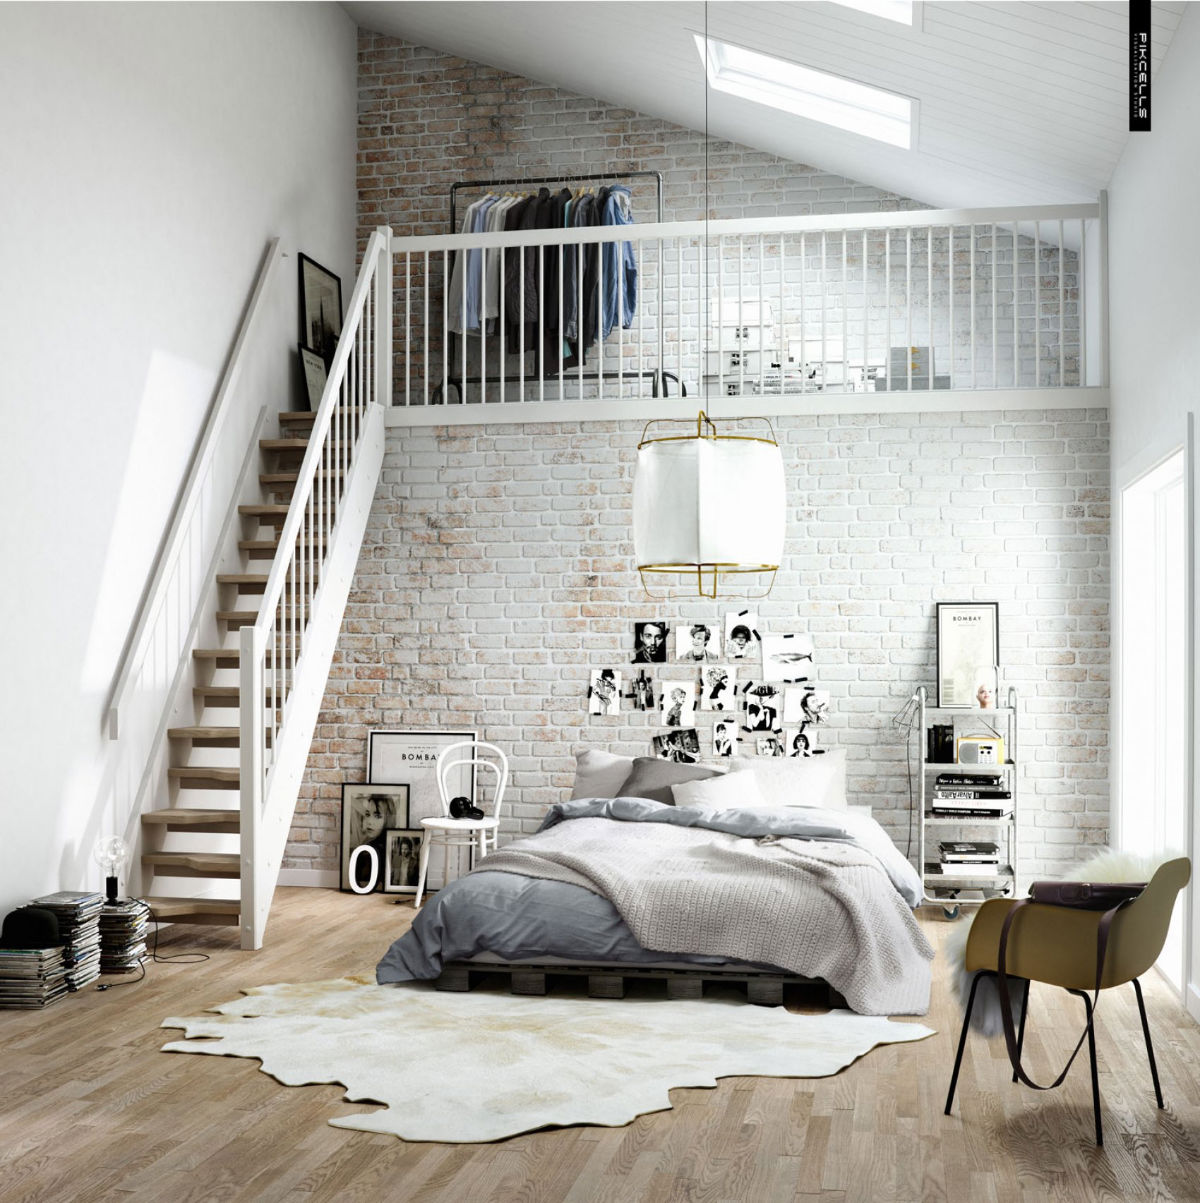 Interior Bedrooms With White Walls bedrooms with exposed brick walls 6 designer pikcells